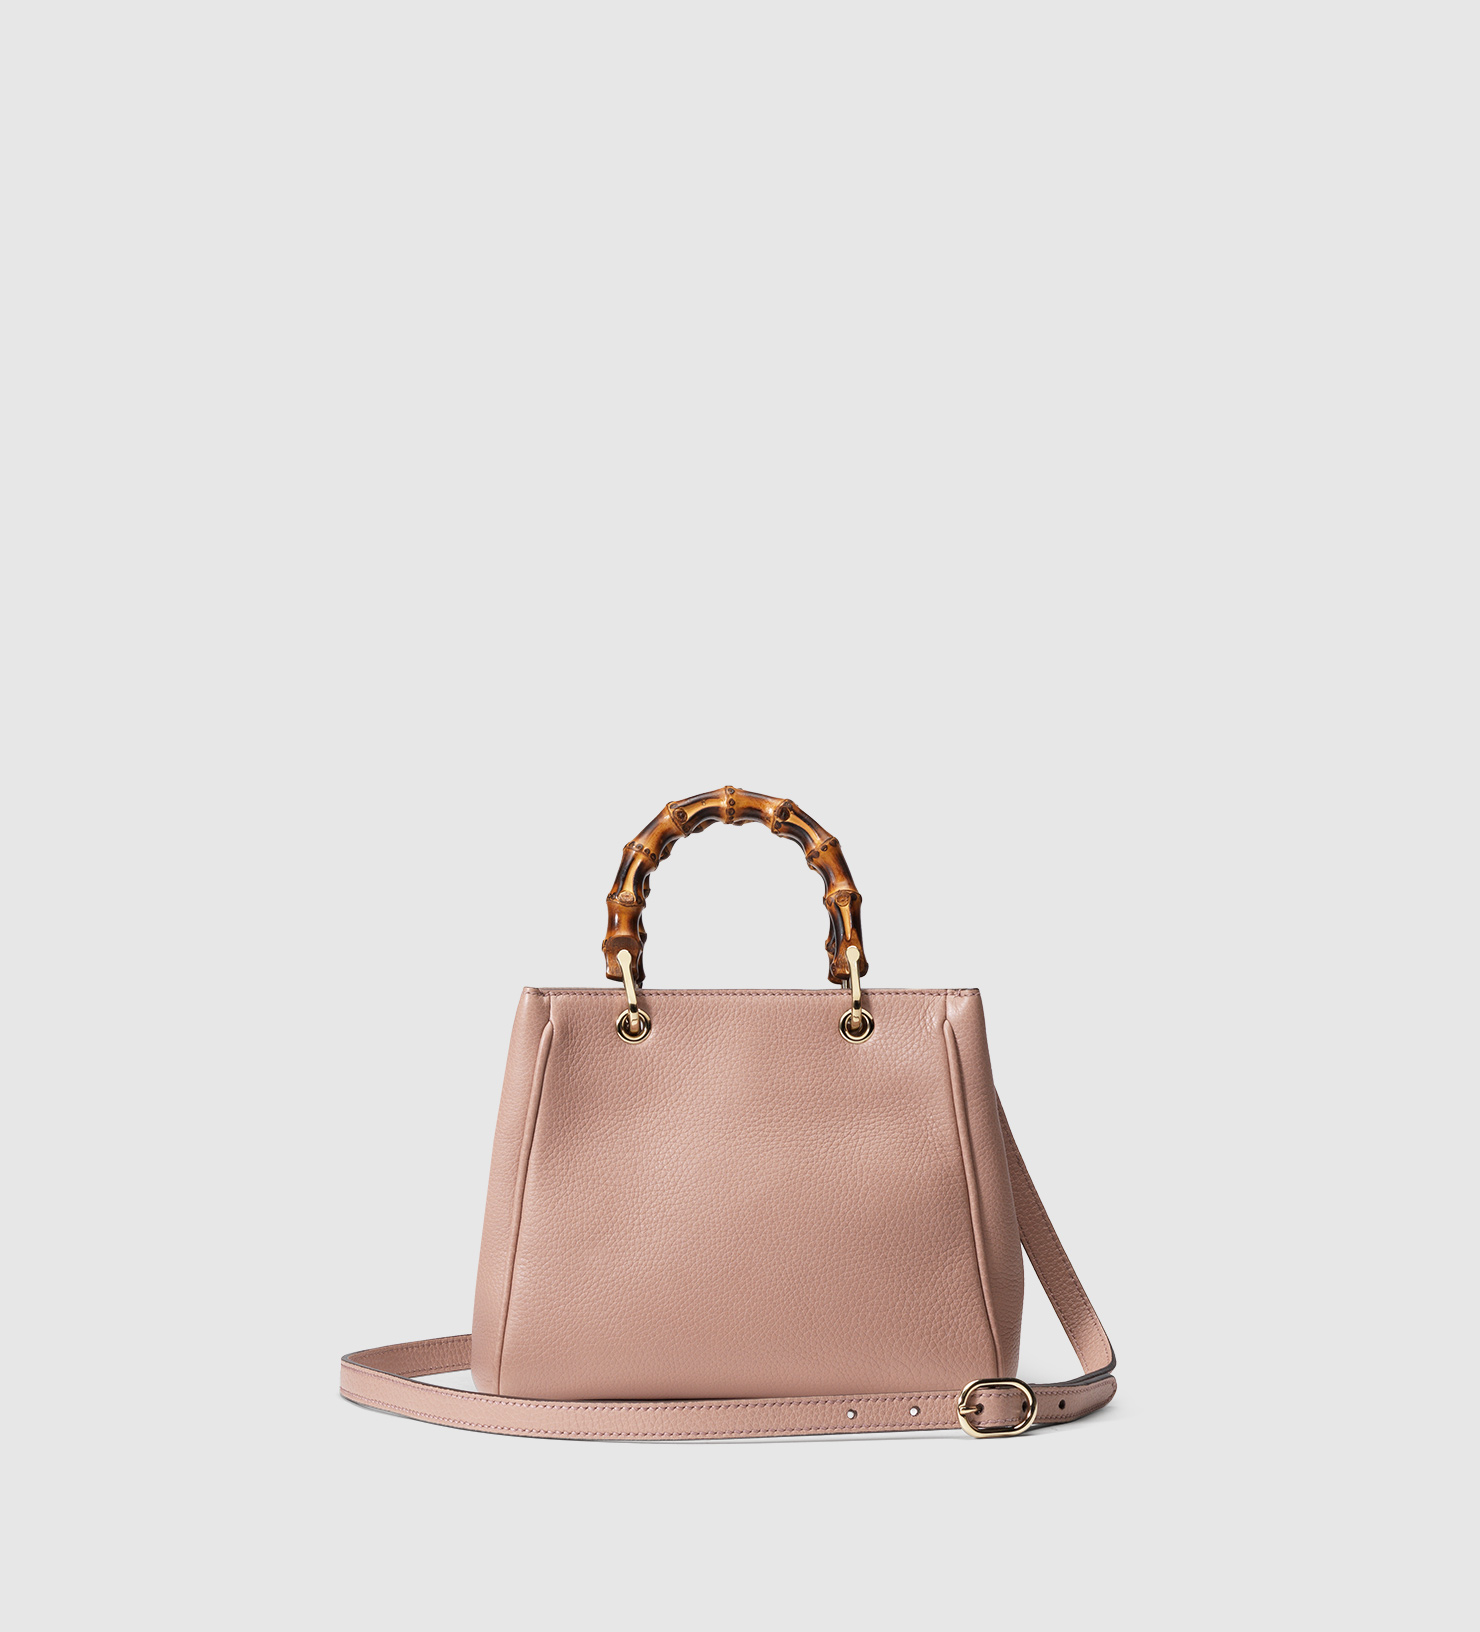 106d20ecafb0 Gucci Bamboo Shopper Mini Bag   Stanford Center for Opportunity ...